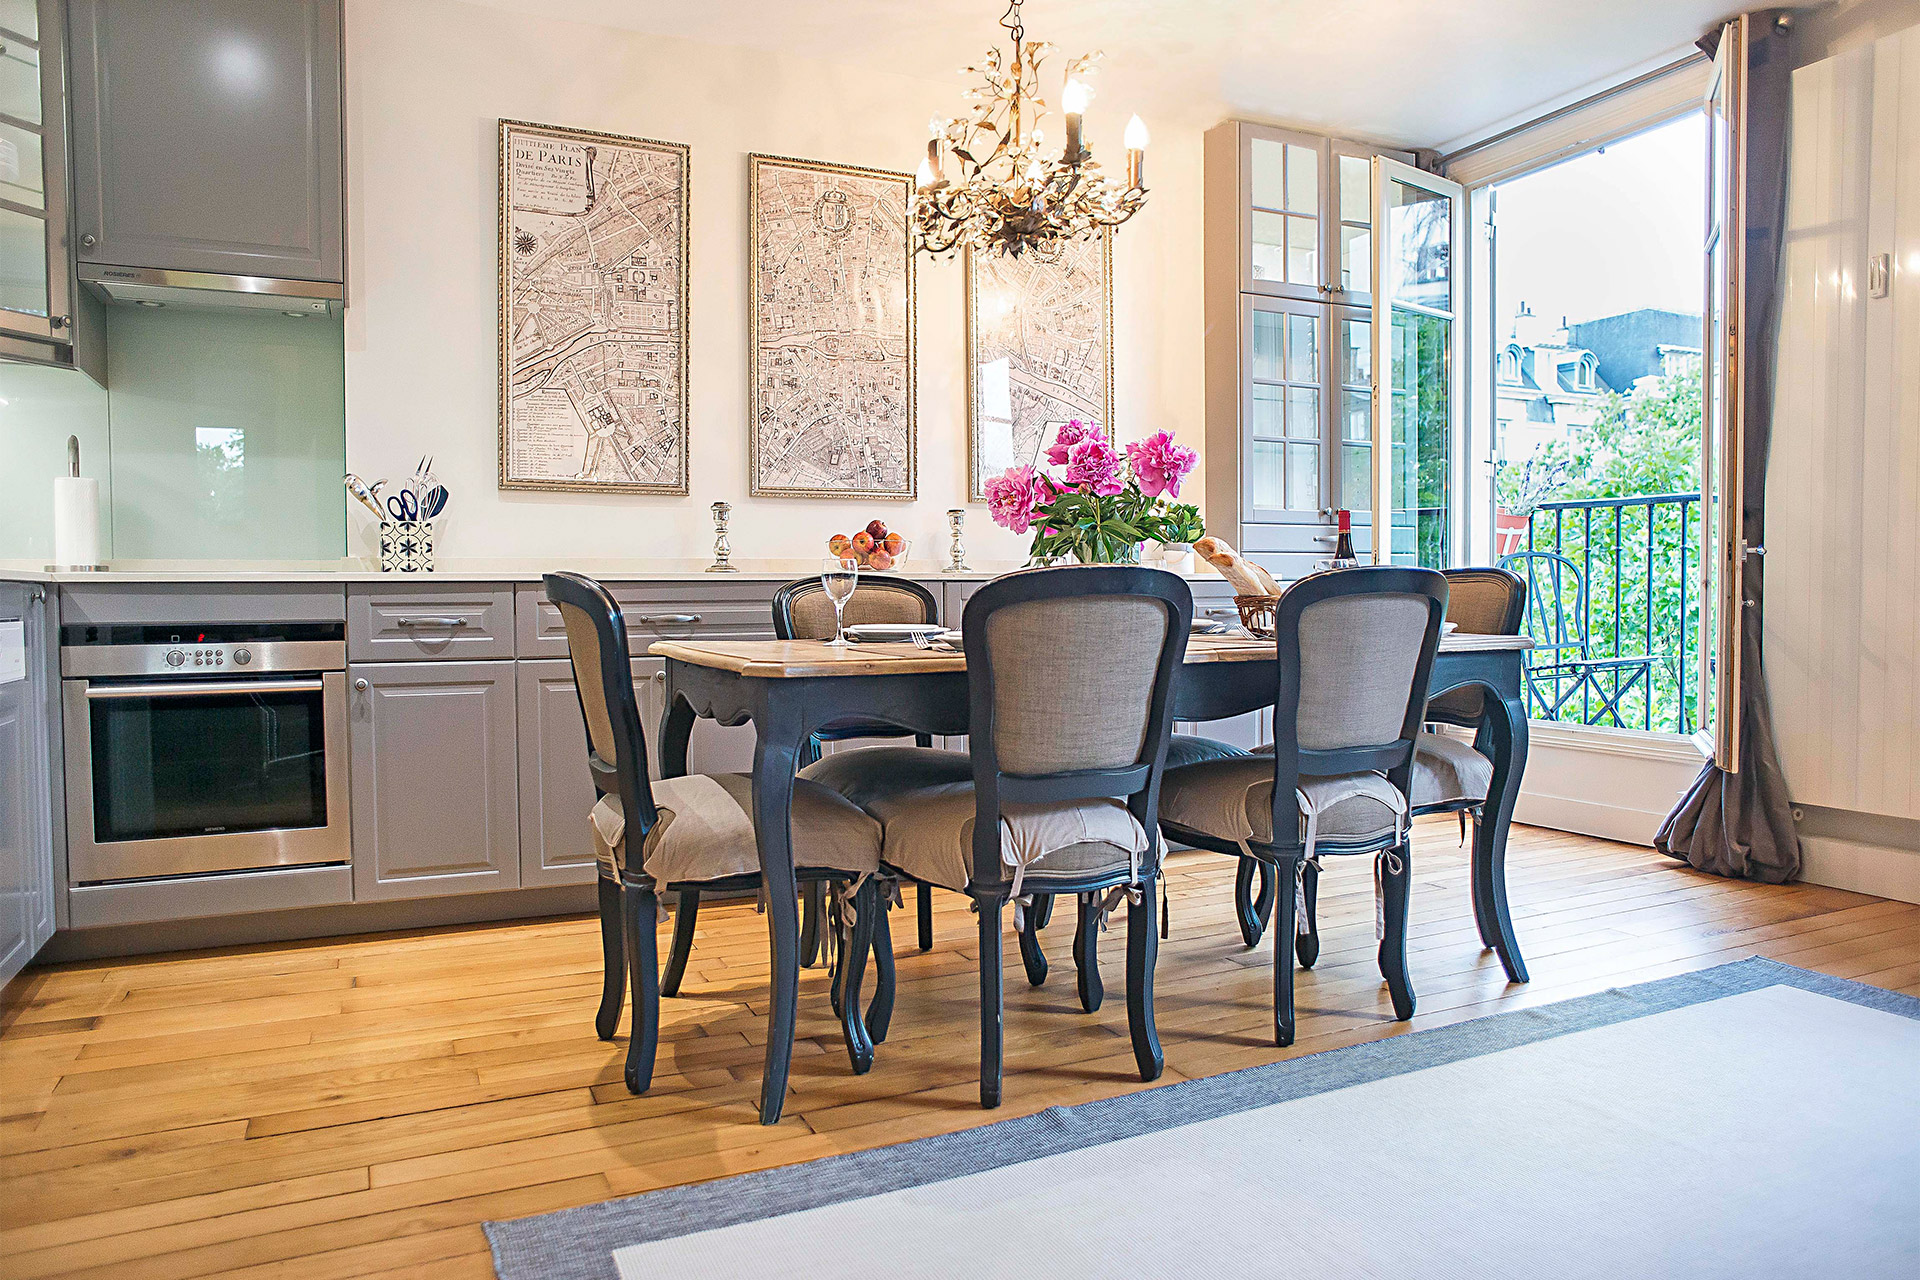 Dining table comfortably seats 6 people in the Bergerac vacation rental offered by Paris Perfect